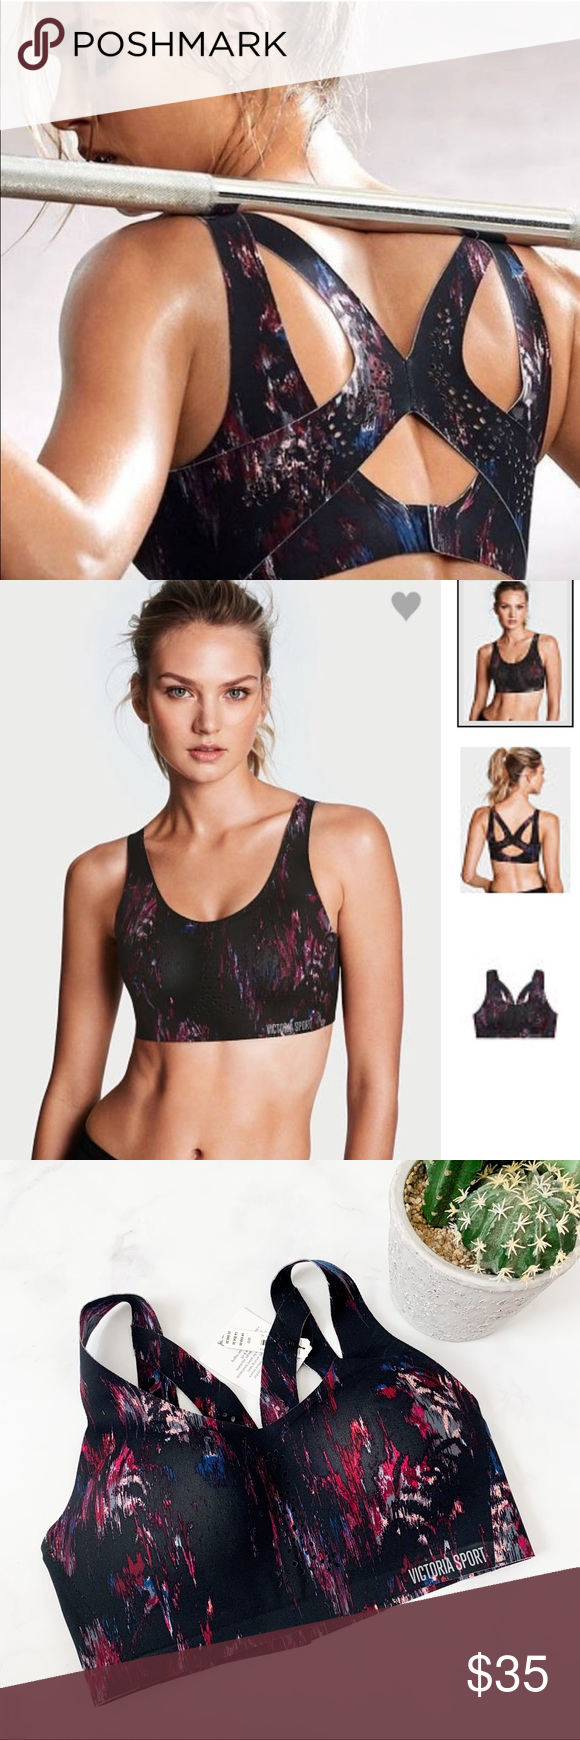 55b735e01 Victoria s Secret Sport Angle Max Sports Bra Brand new with tags!  (005-vsbag) PRODUCT DETAILS  •Size  32D   32 D •Colors  Black Blue Pink Wine  Gray •Made in ...